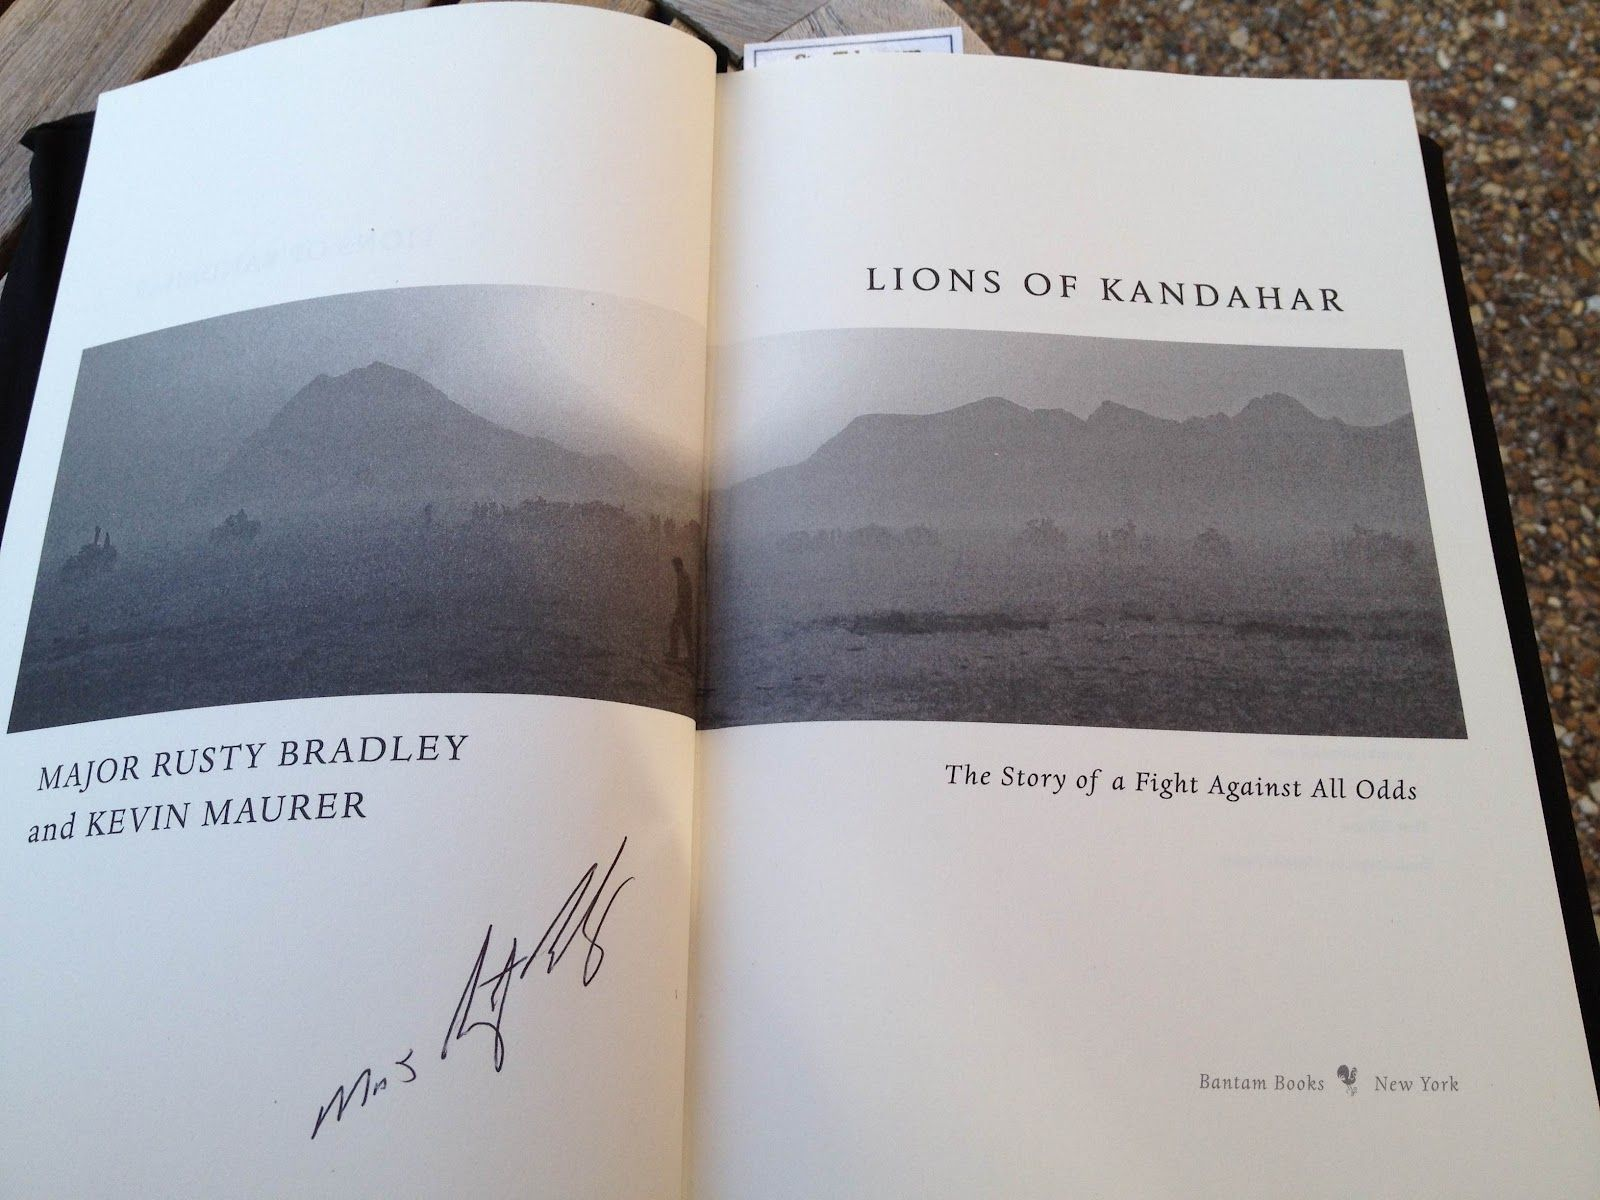 'Lions of Kandahar' by Major Rusty Bradley and Kevin Maurer.   (A book written by a special forces soldier while on active duty.)       -------      http://lionsofkandahar.com